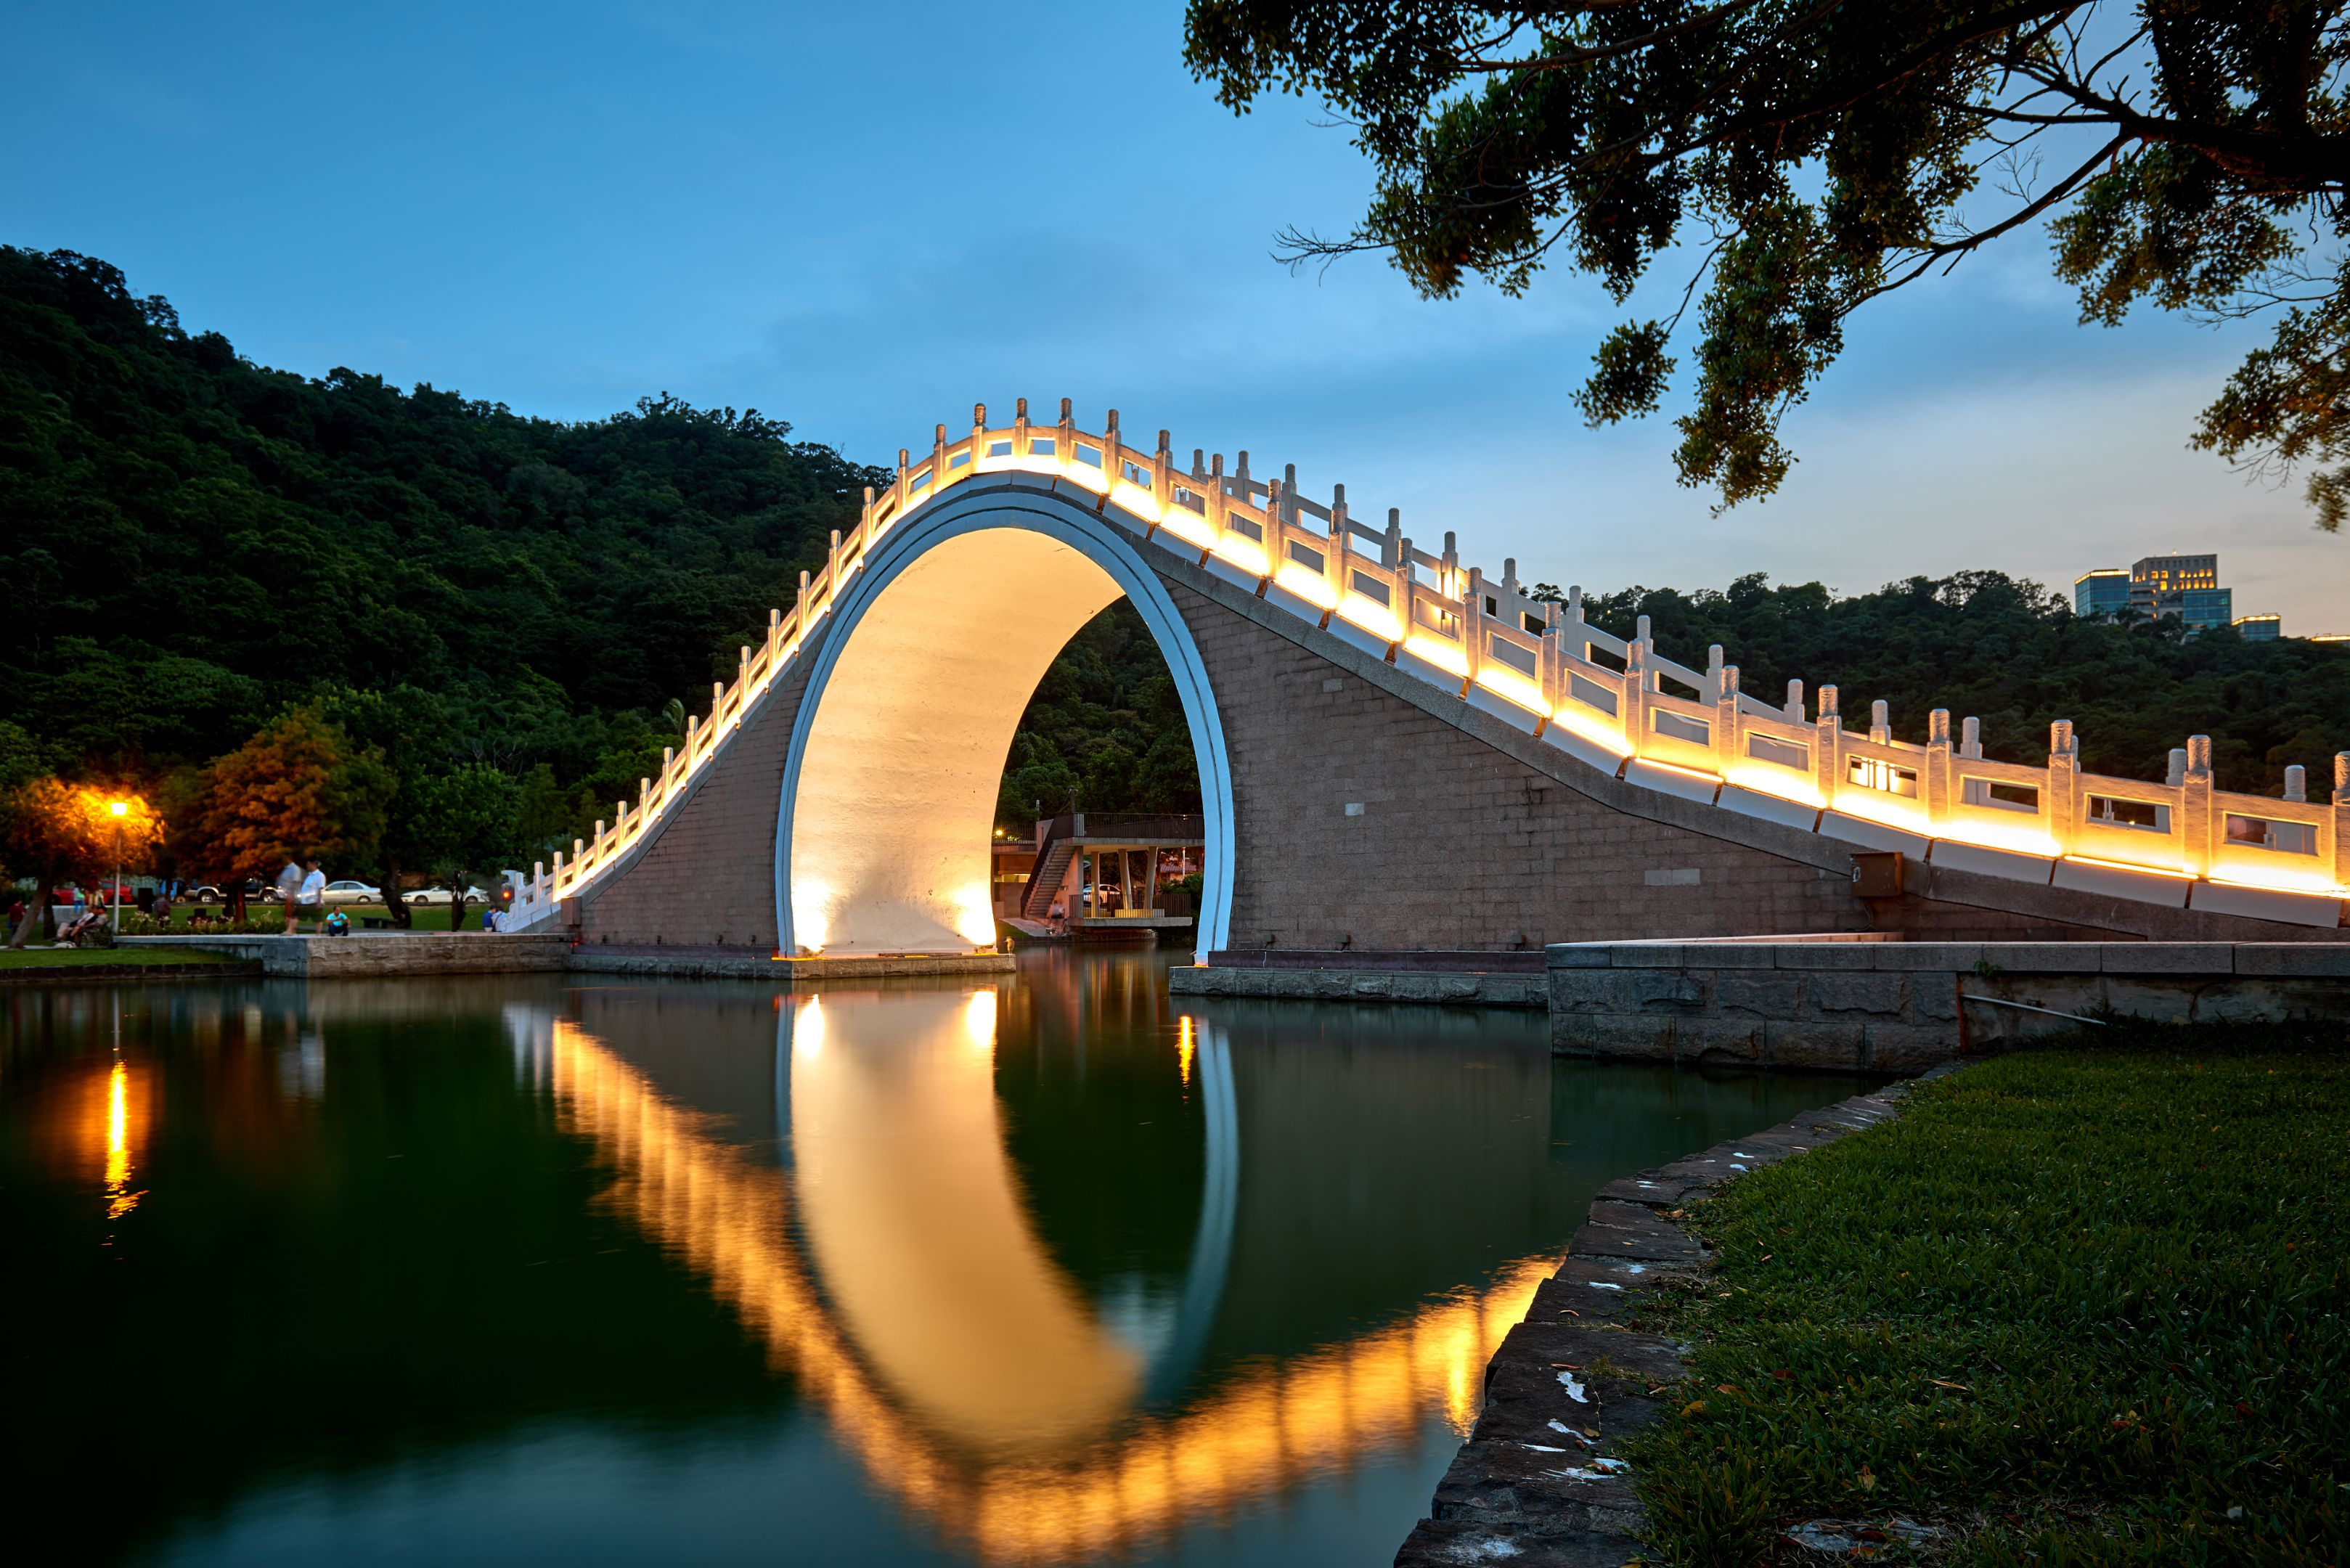 Reflection of the Dahu bridge in the water after the sunset in Taipei Park, Taiwan